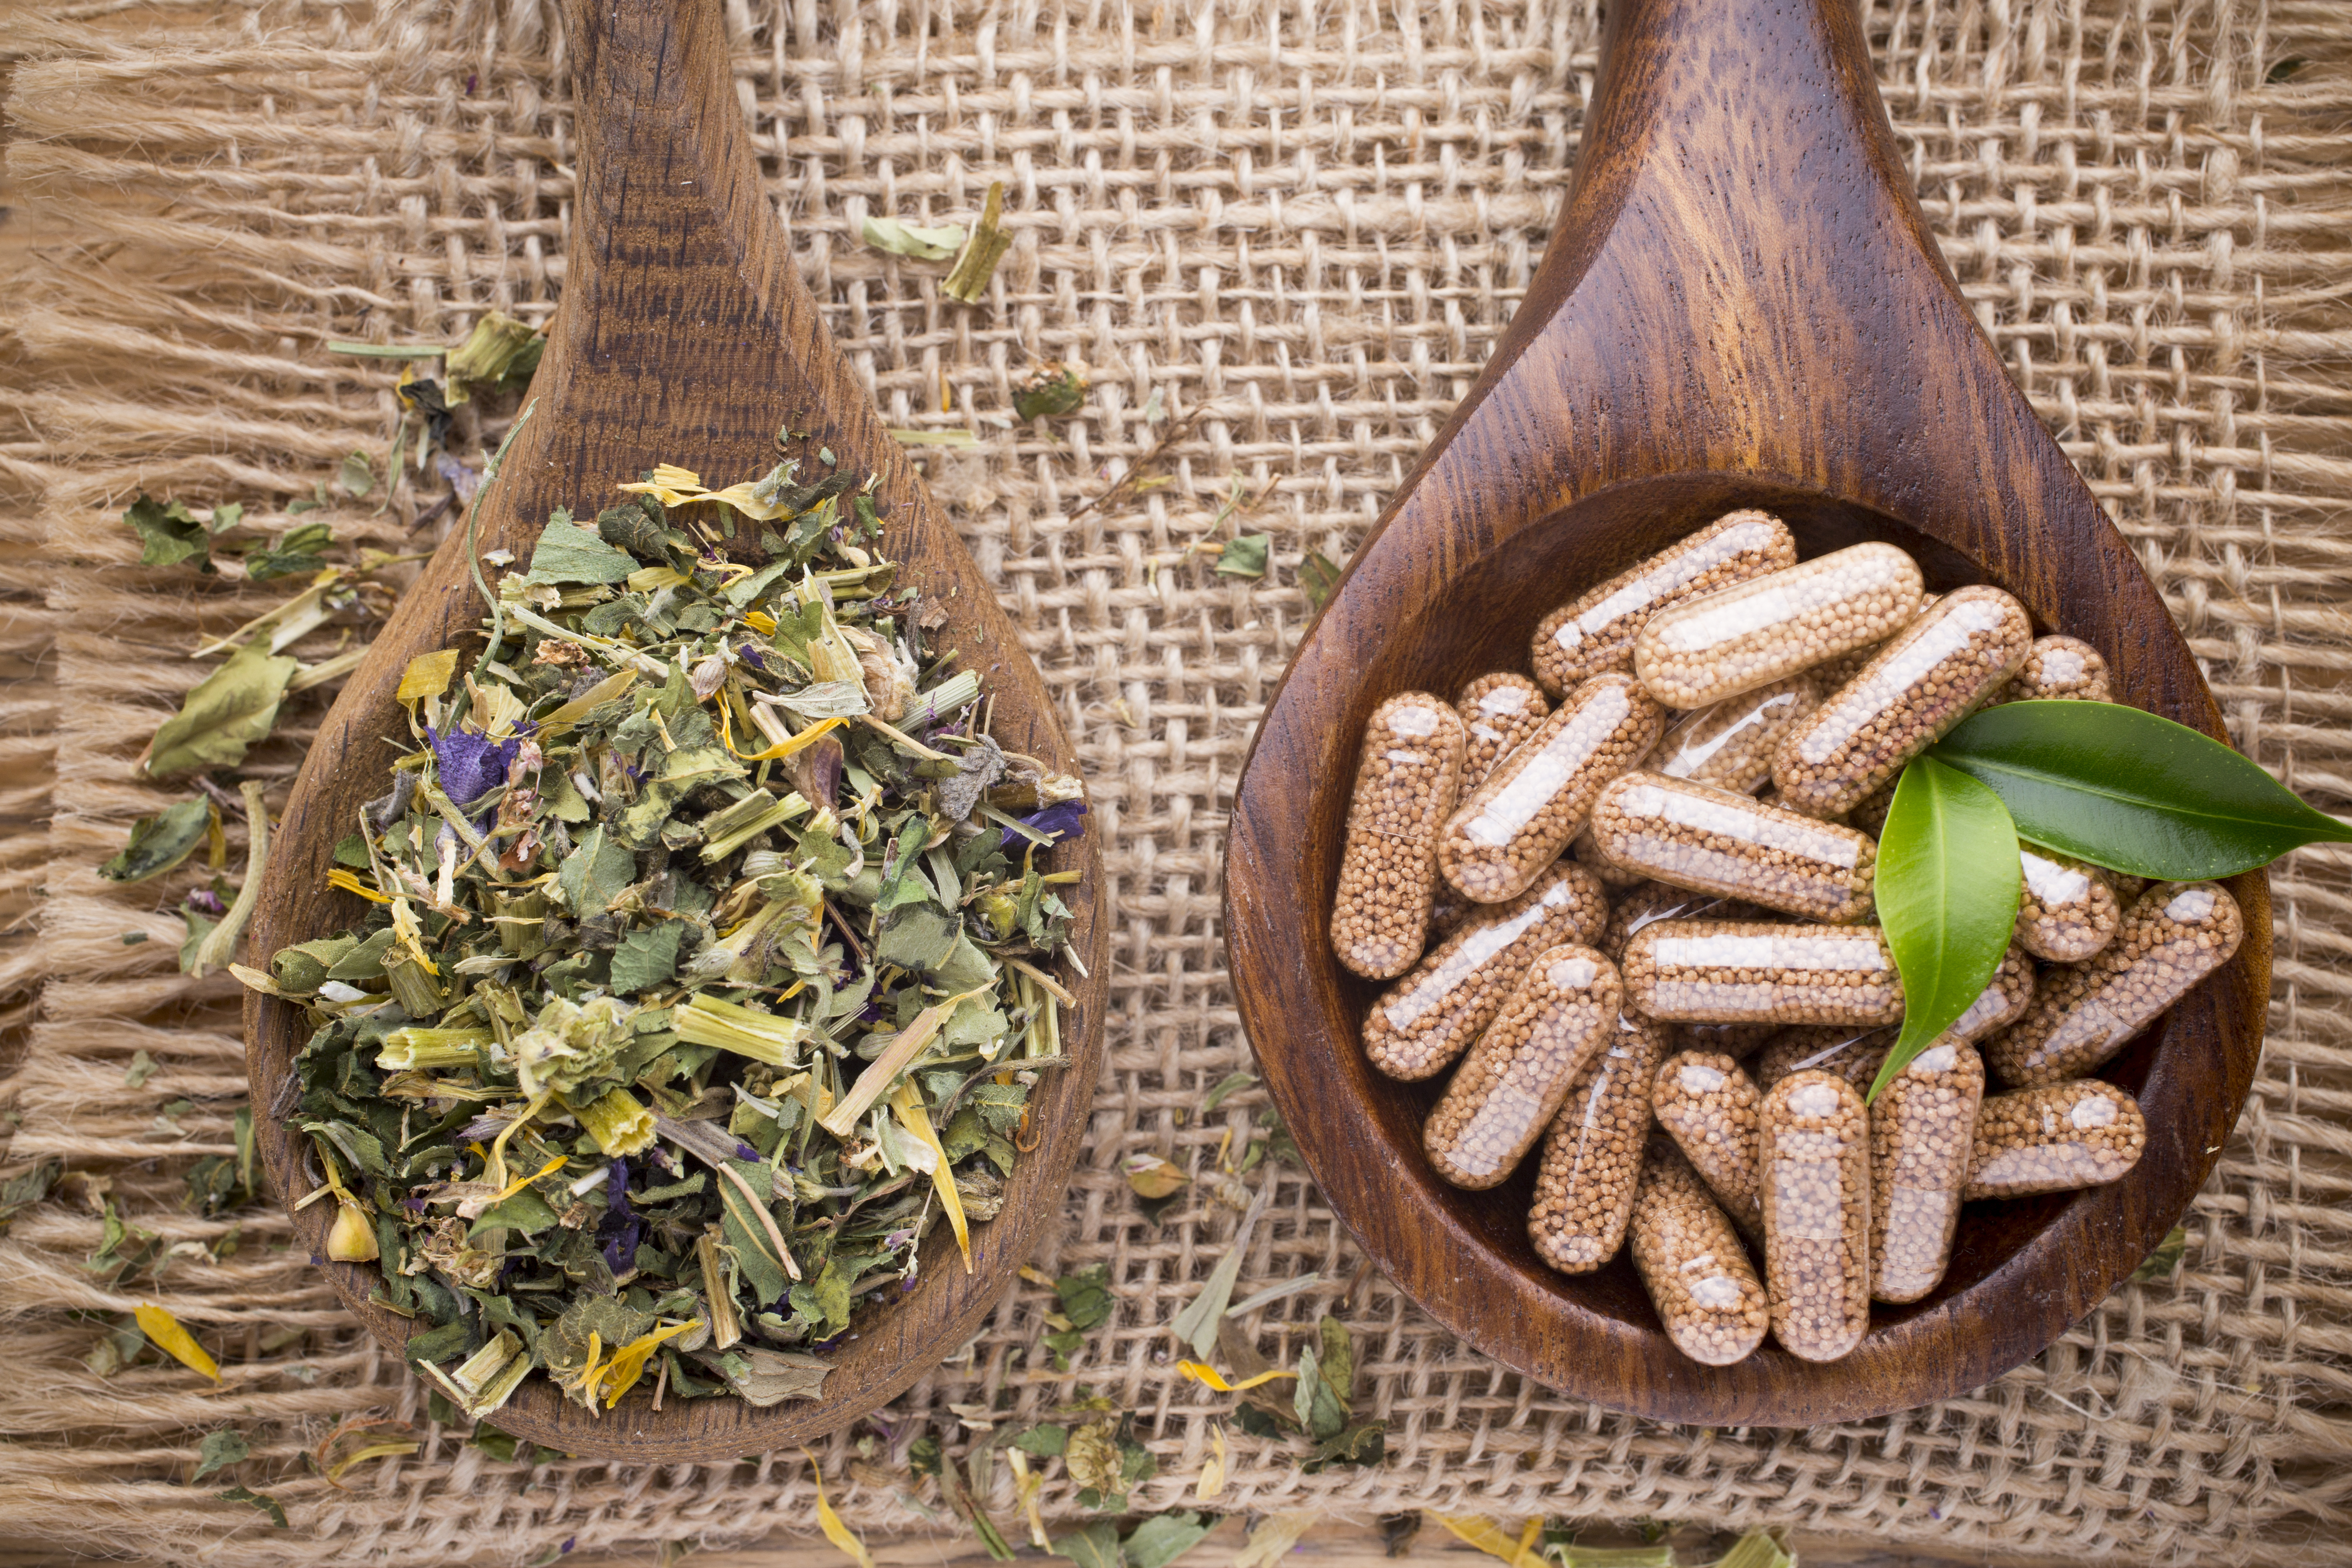 Cheap herbal supplement - Herbal Supplements At Nation S Top Retailers Found To Contain Anything But Purported Herbs